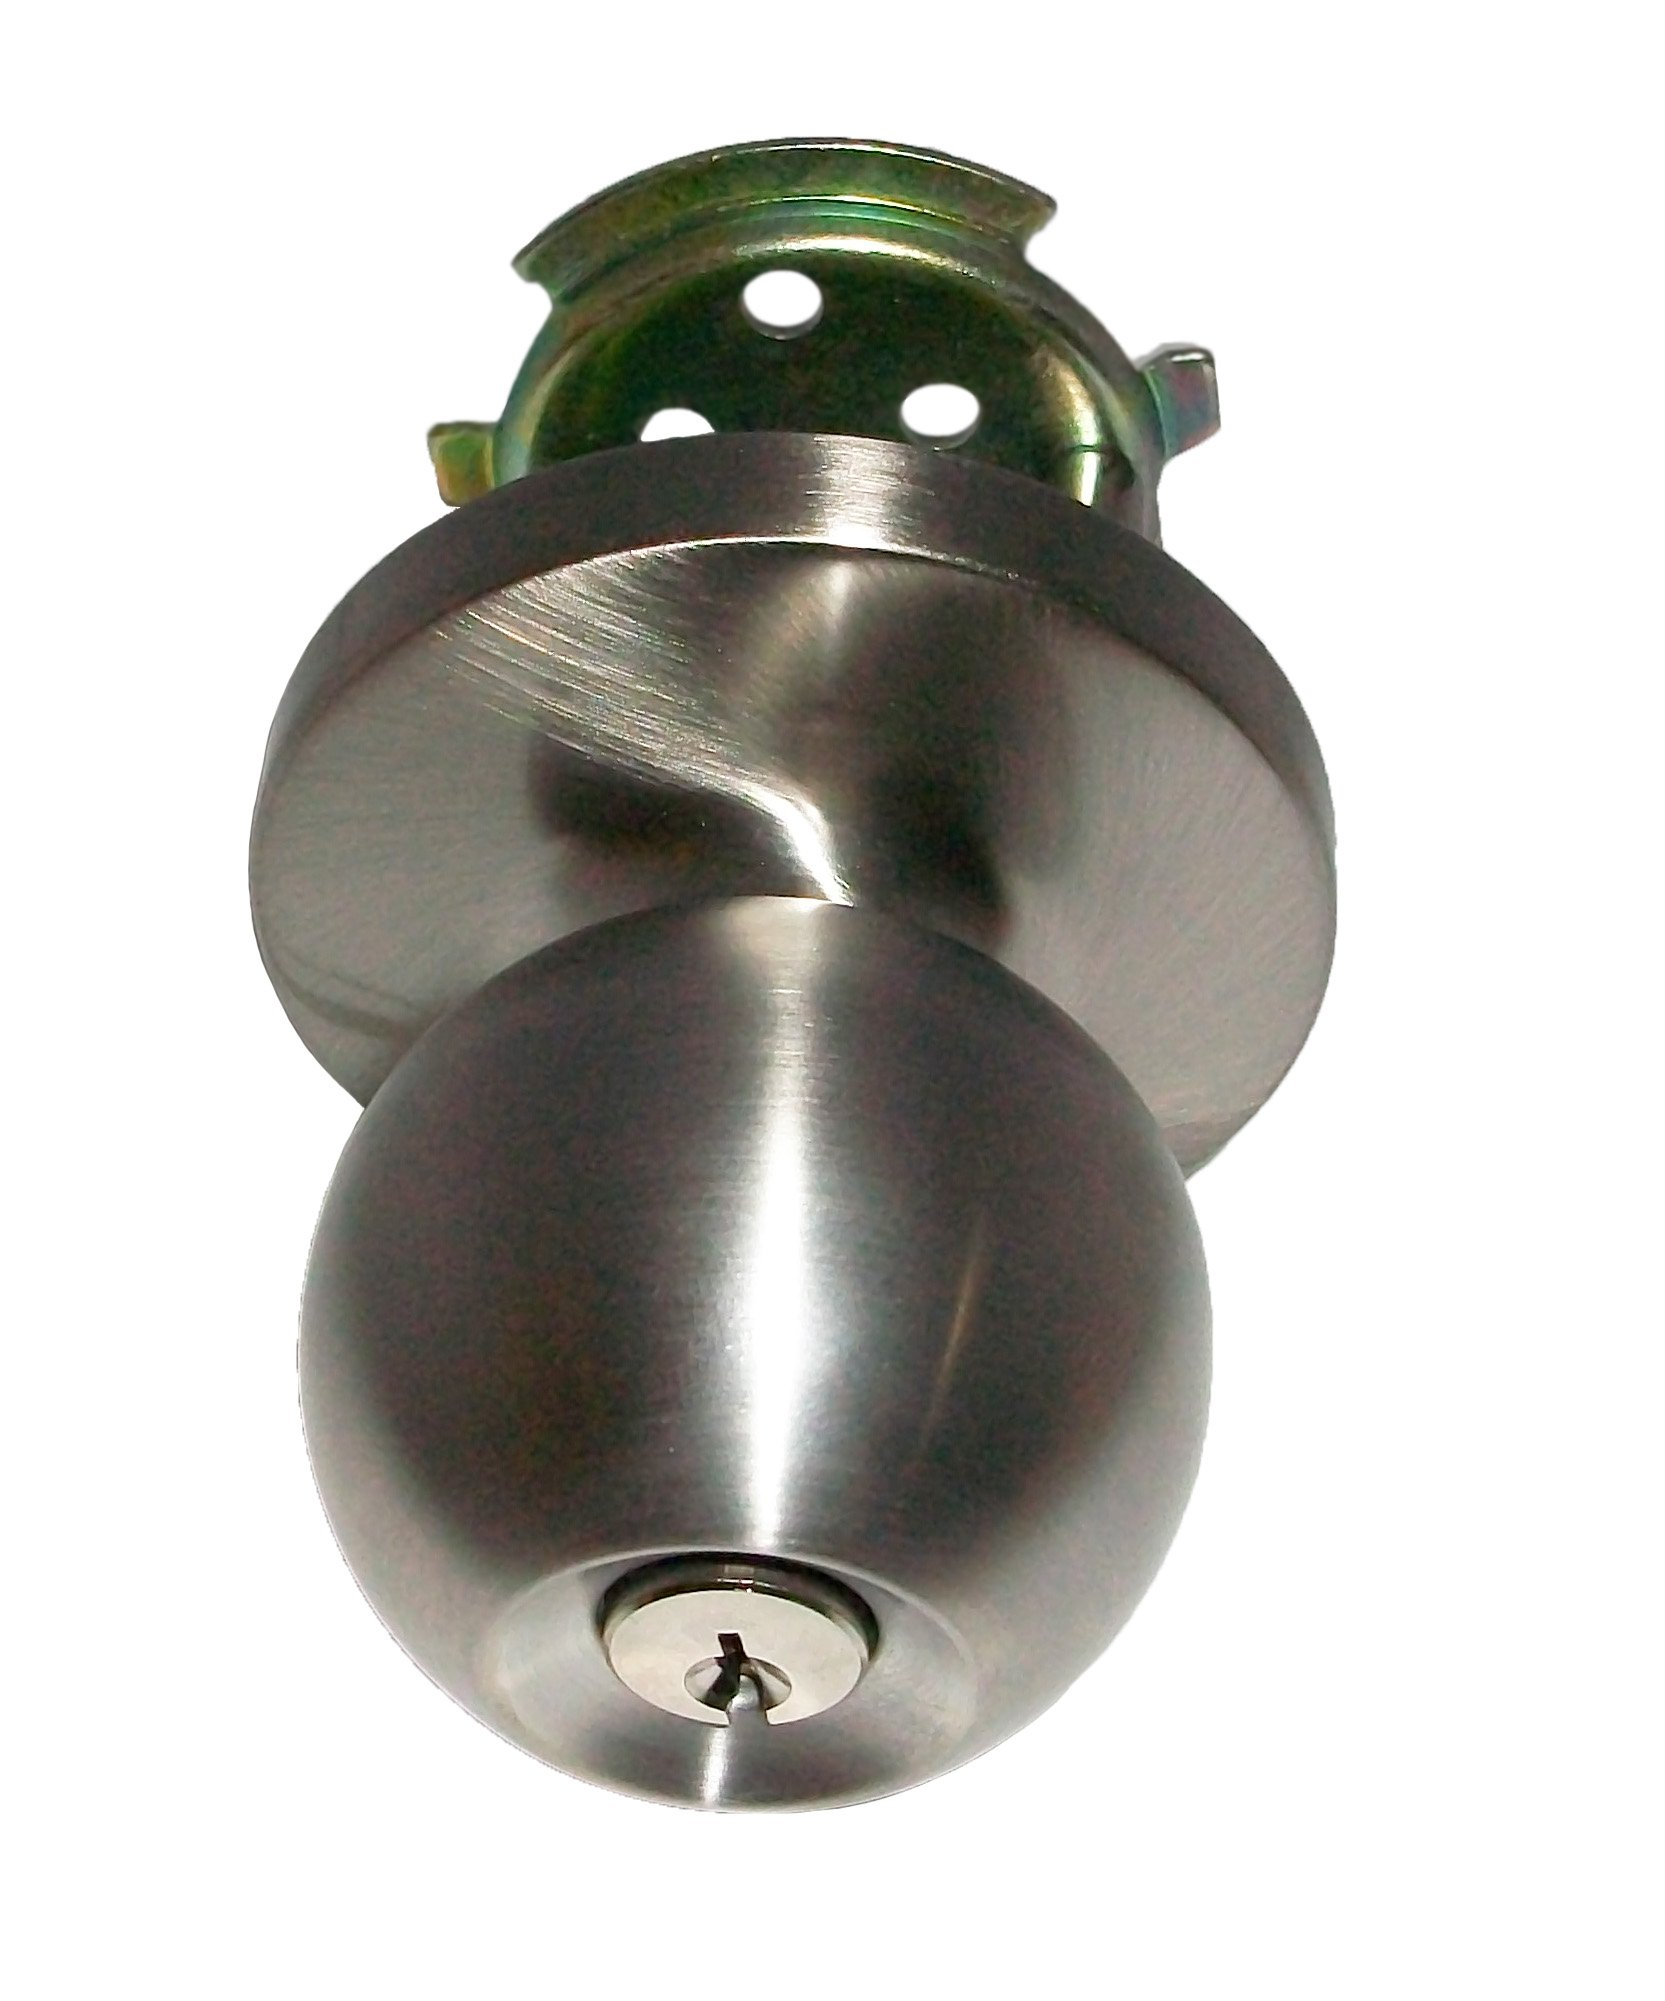 Global Door Controls ED-BKL500-US32D Trans Atlantic Entry Function Ball Knob Trim In Satin Stainless steel by Taco